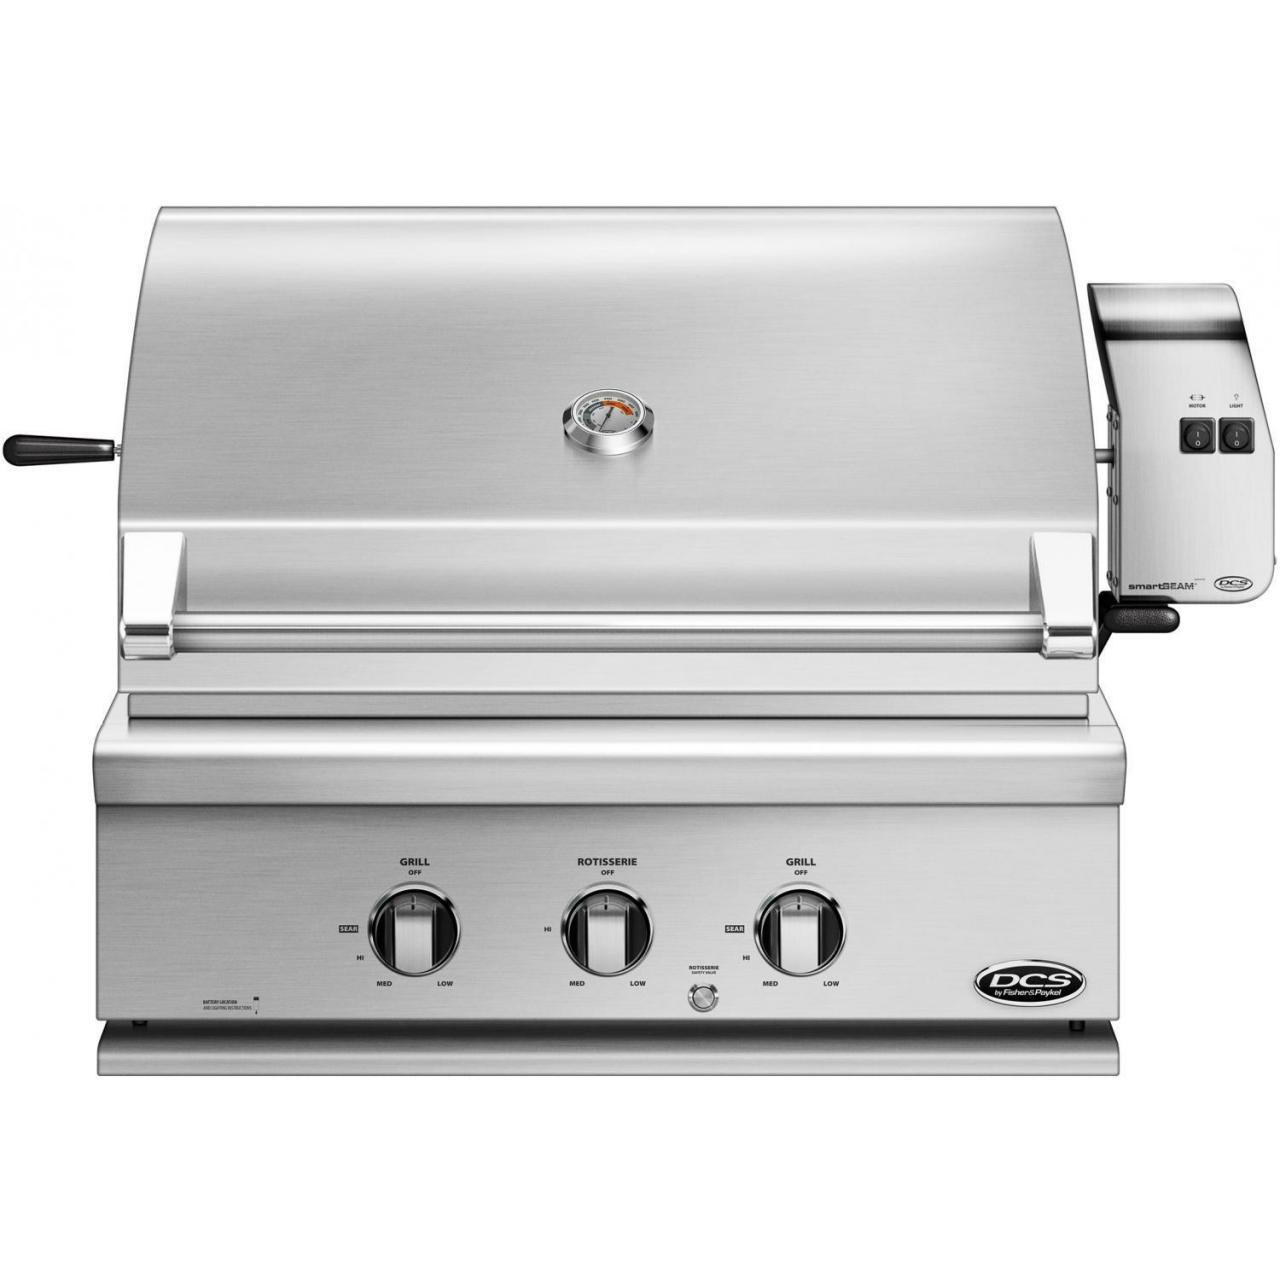 China DCS Professional 30-Inch Built-In Natural Gas Grill With Rotisserie - BH1-30R-N on sale